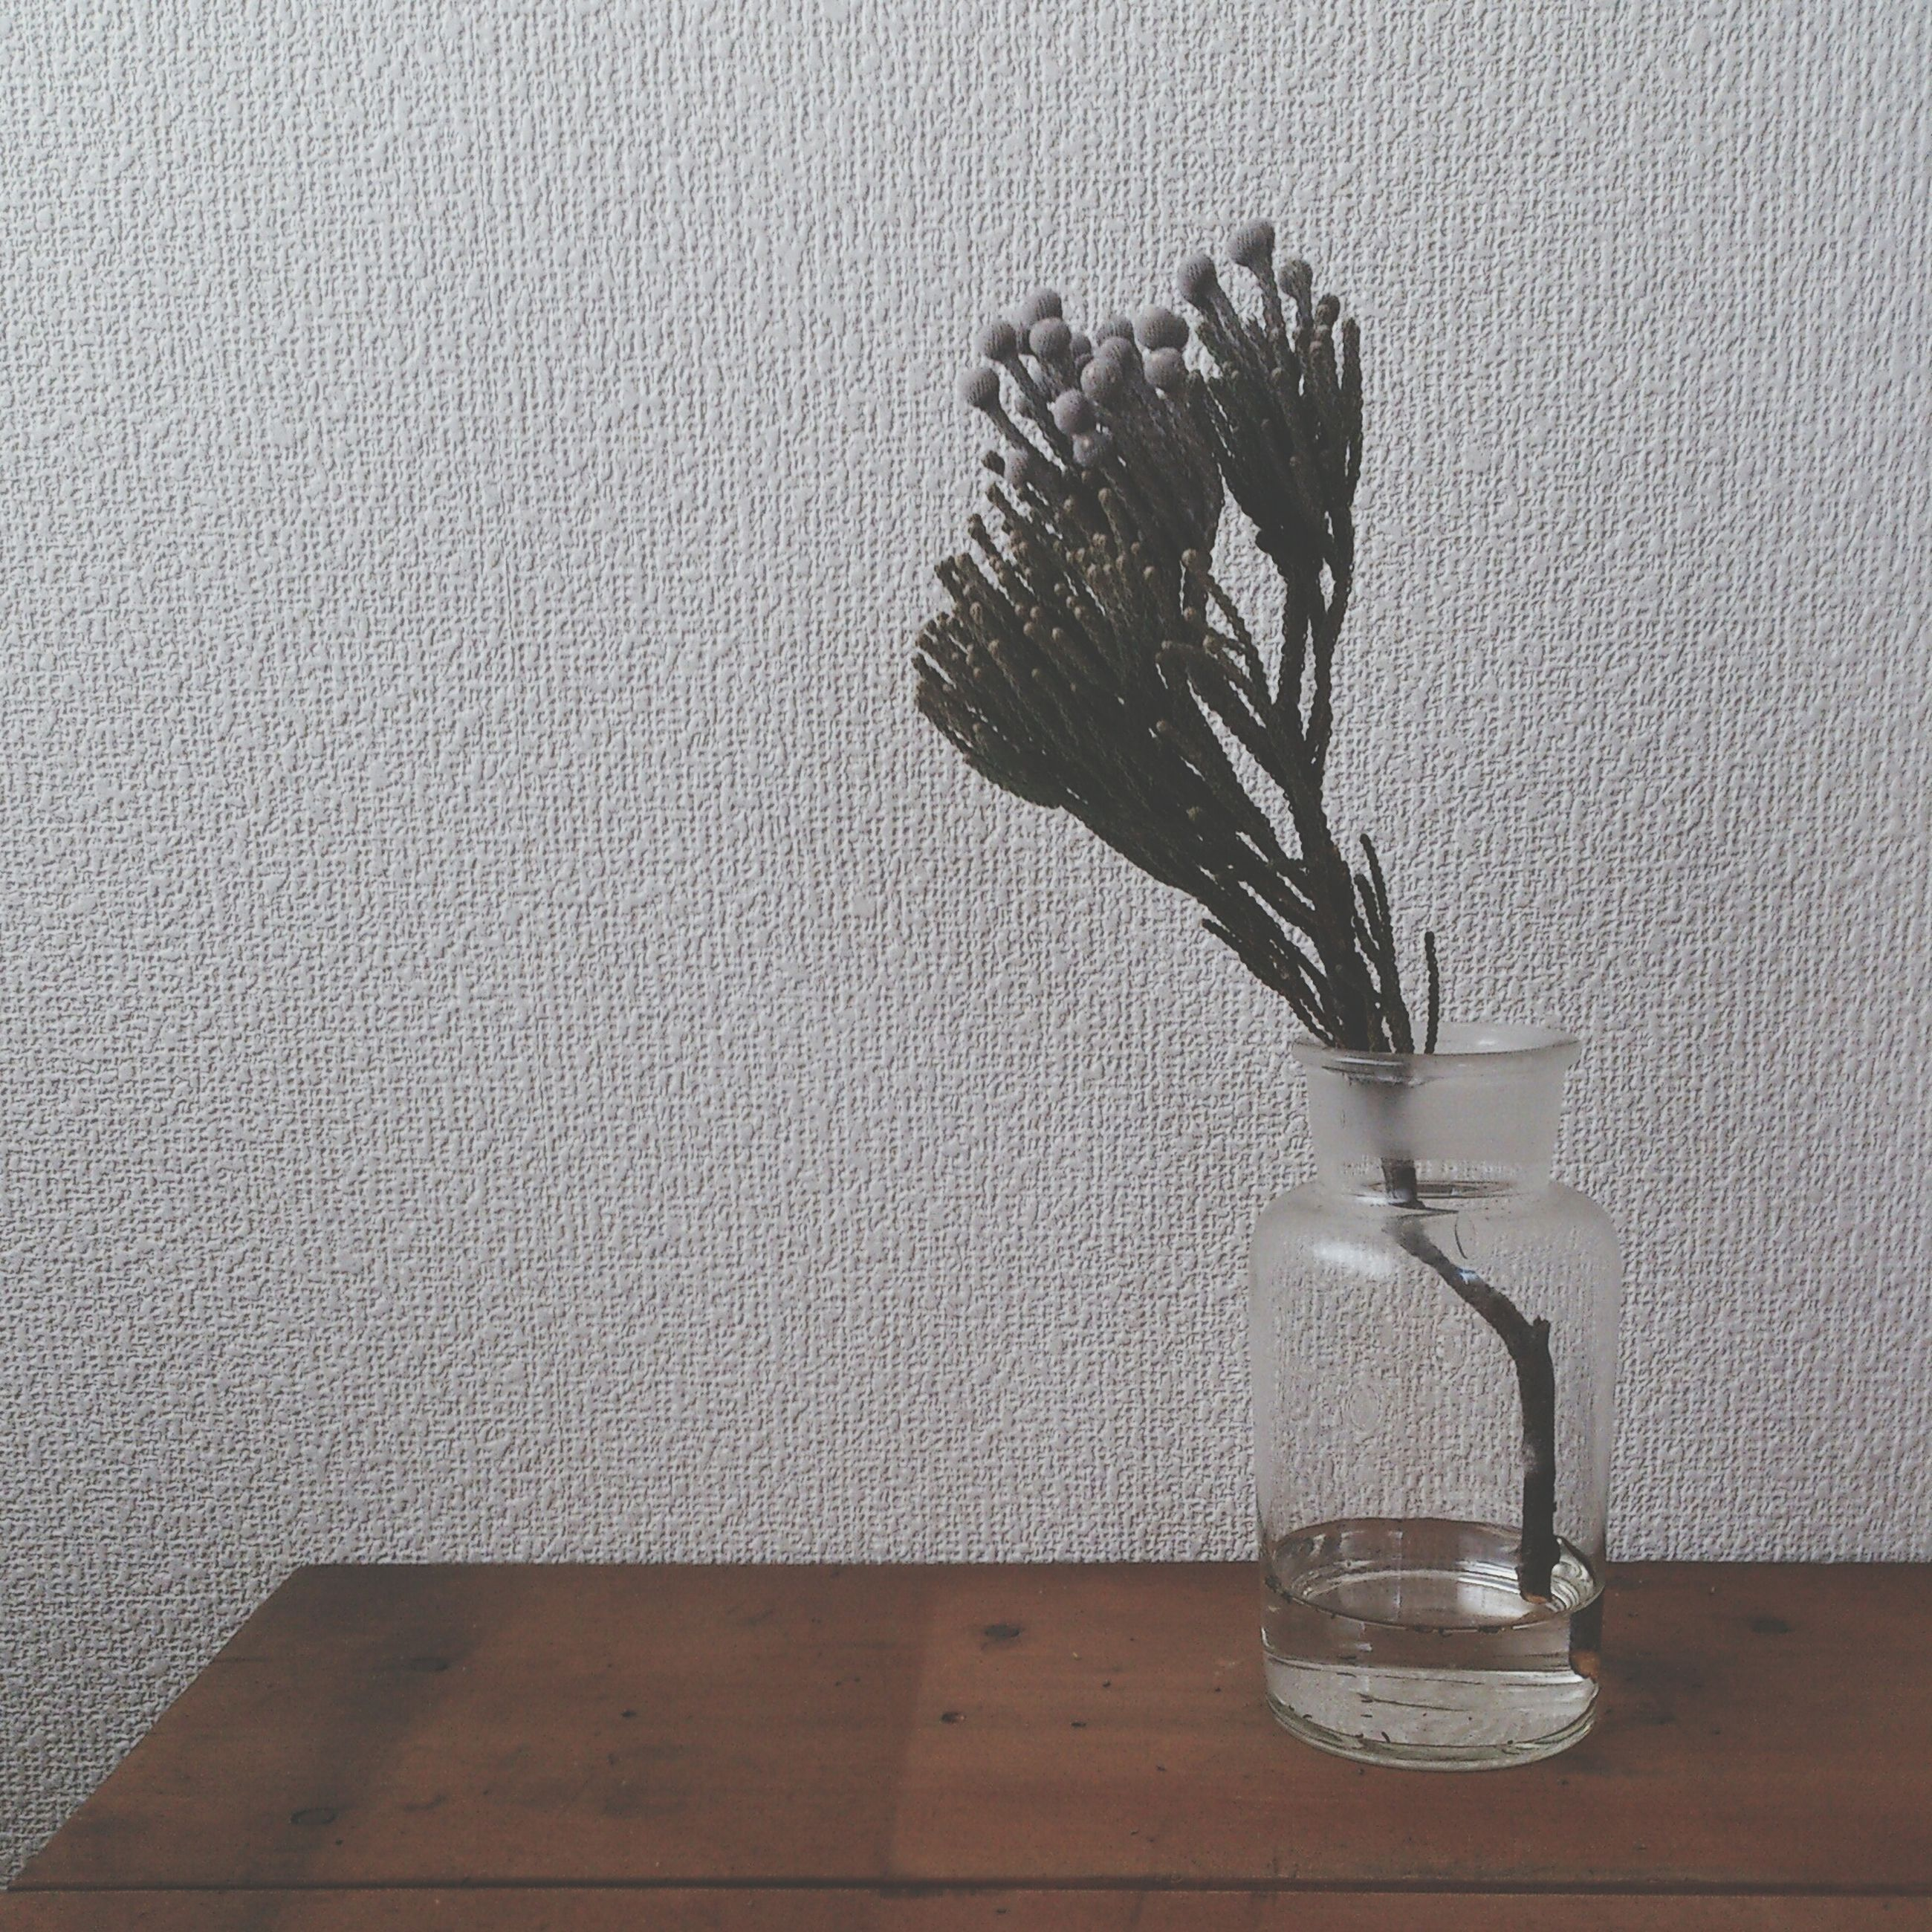 indoors, table, still life, vase, home interior, wall - building feature, shadow, close-up, high angle view, glass - material, no people, flower, wall, single object, decoration, wood - material, simplicity, domestic room, fragility, bottle